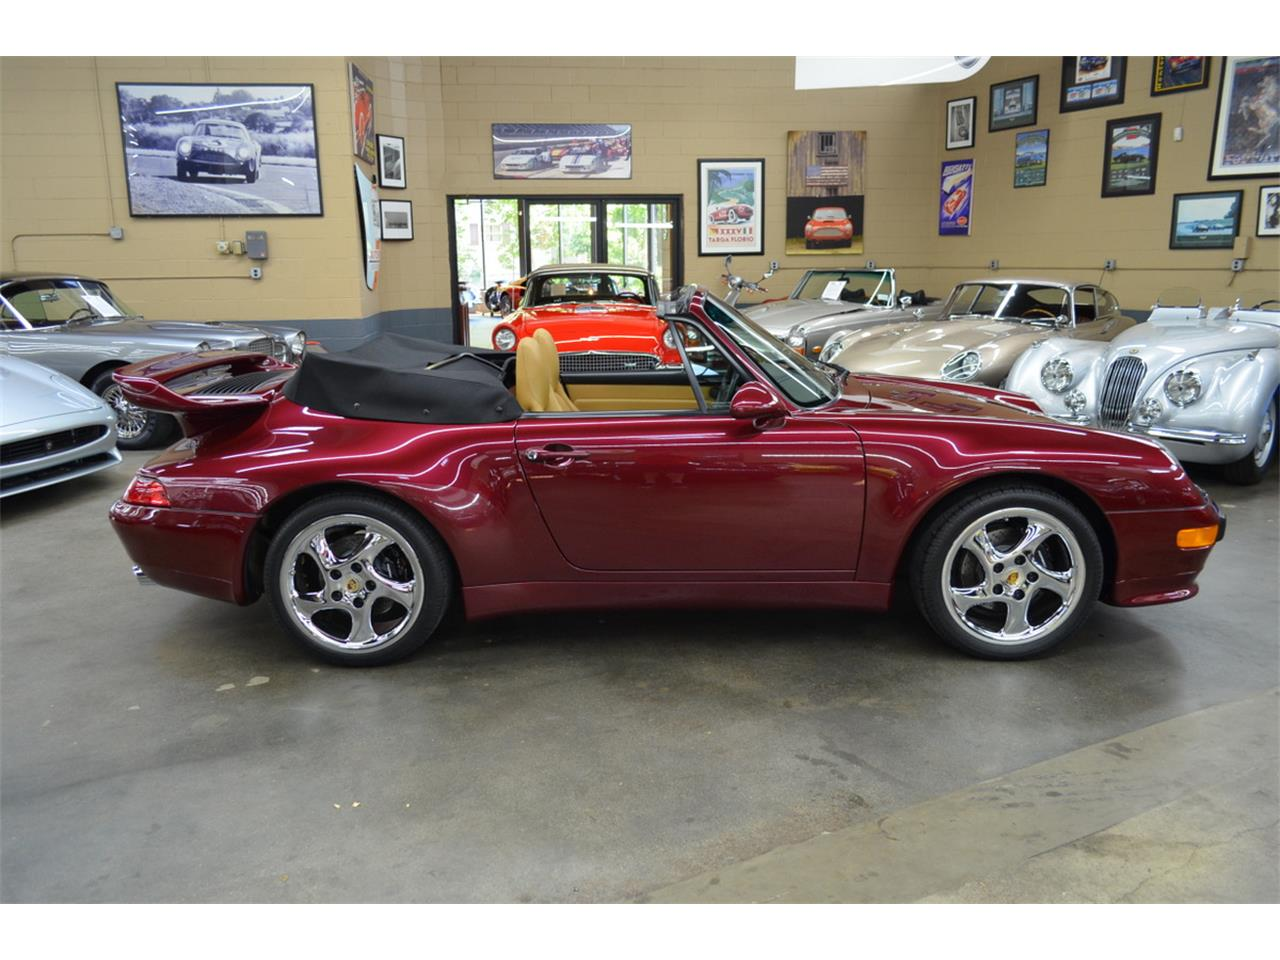 Large Picture of '97 Porsche 911 Carrera - $79,500.00 - QG4T